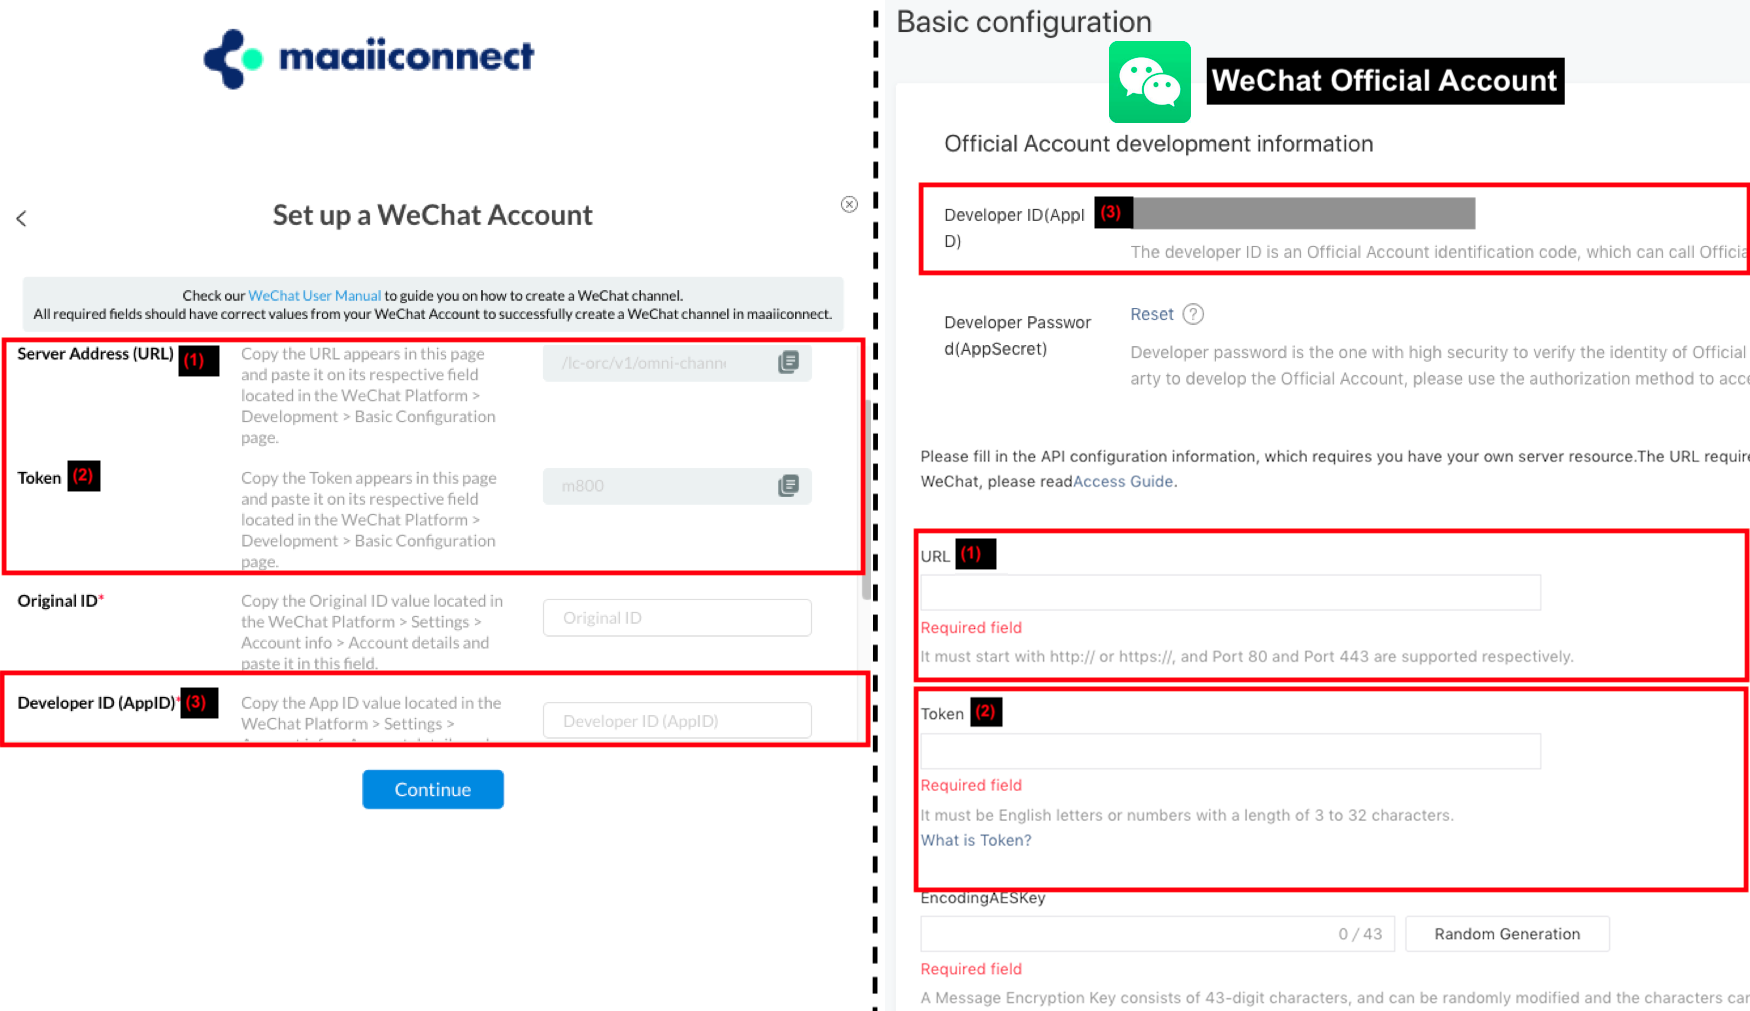 Setting up a new WeChat channel